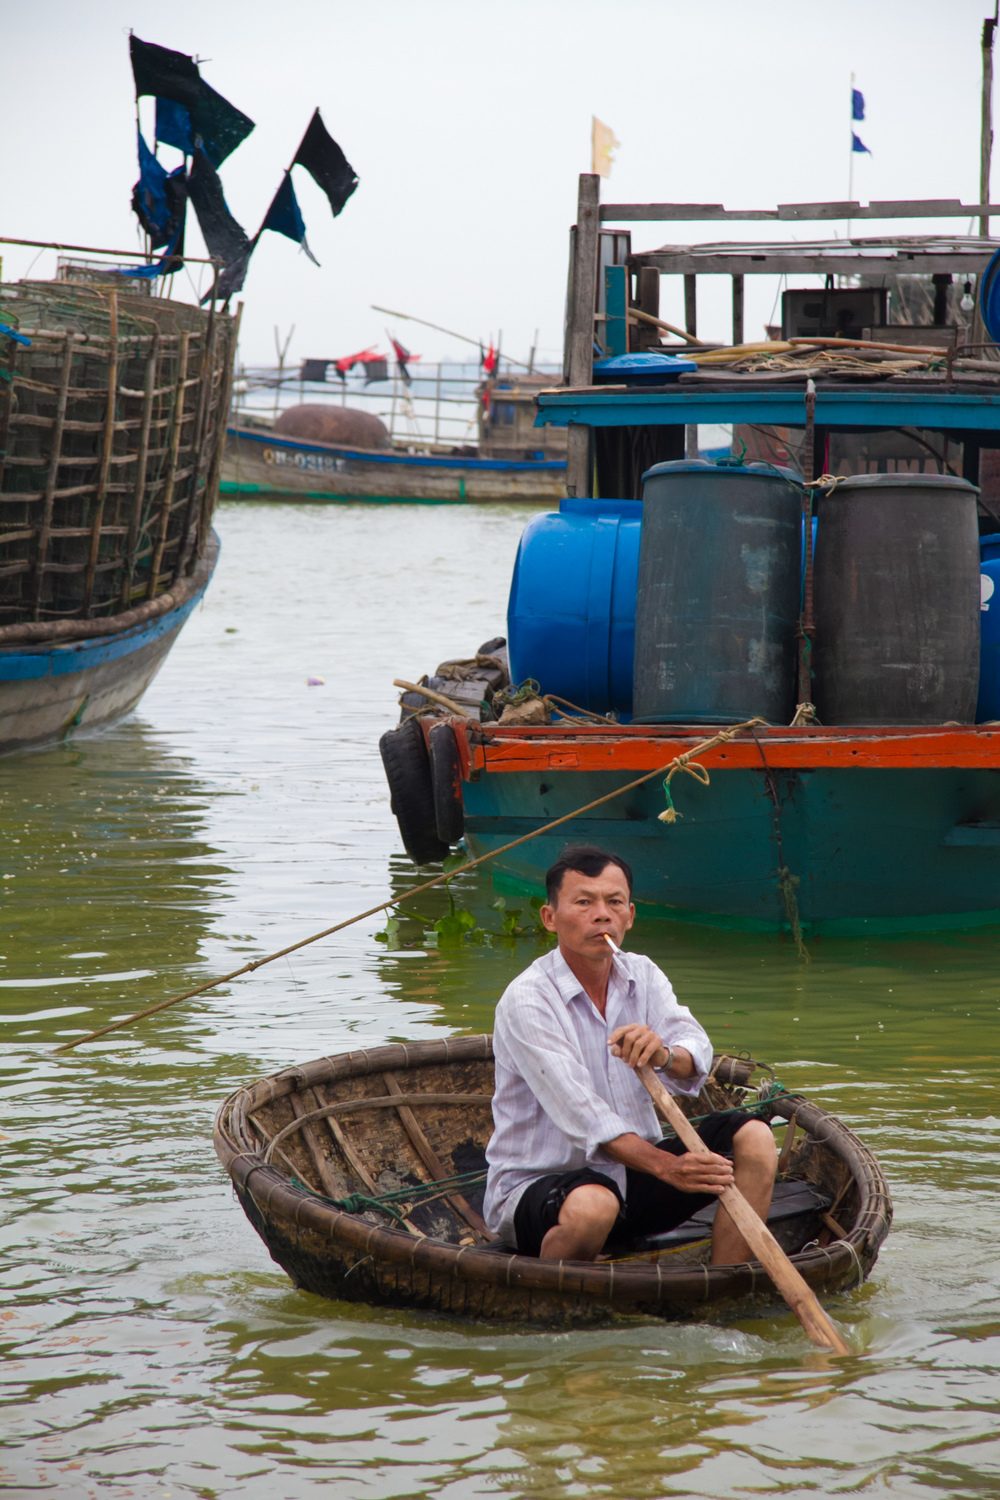 Vietnam_Travel_Photographer_031.JPG